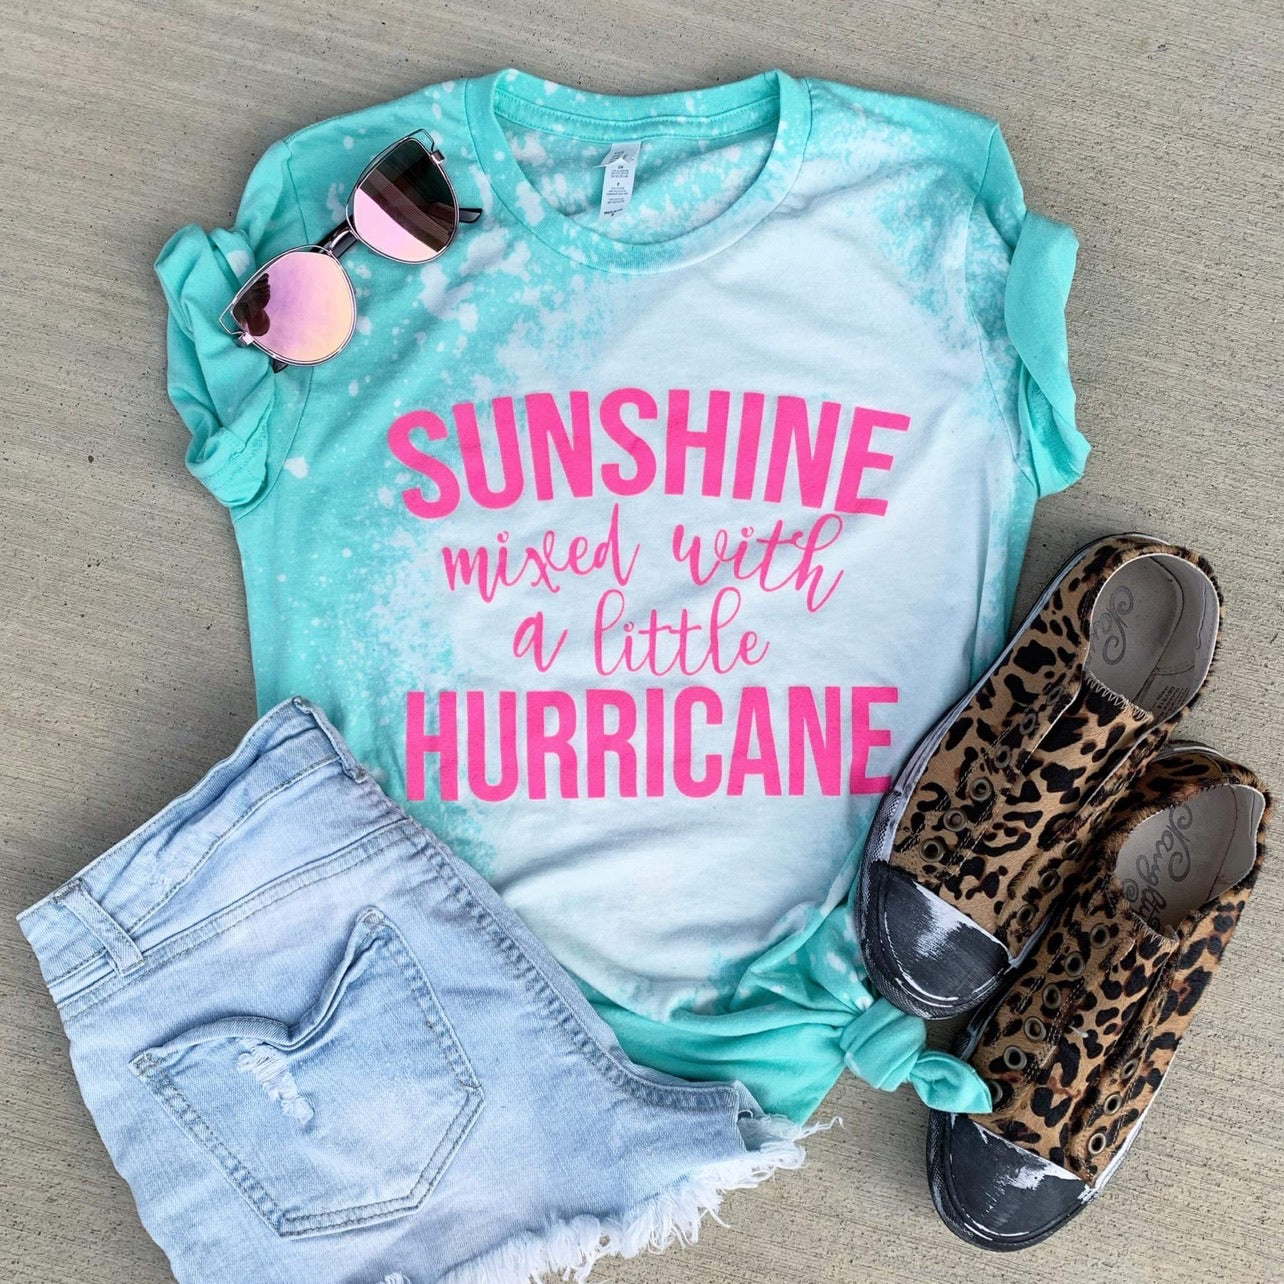 Hurricane Bleached Tee - This & That Boutique Shop